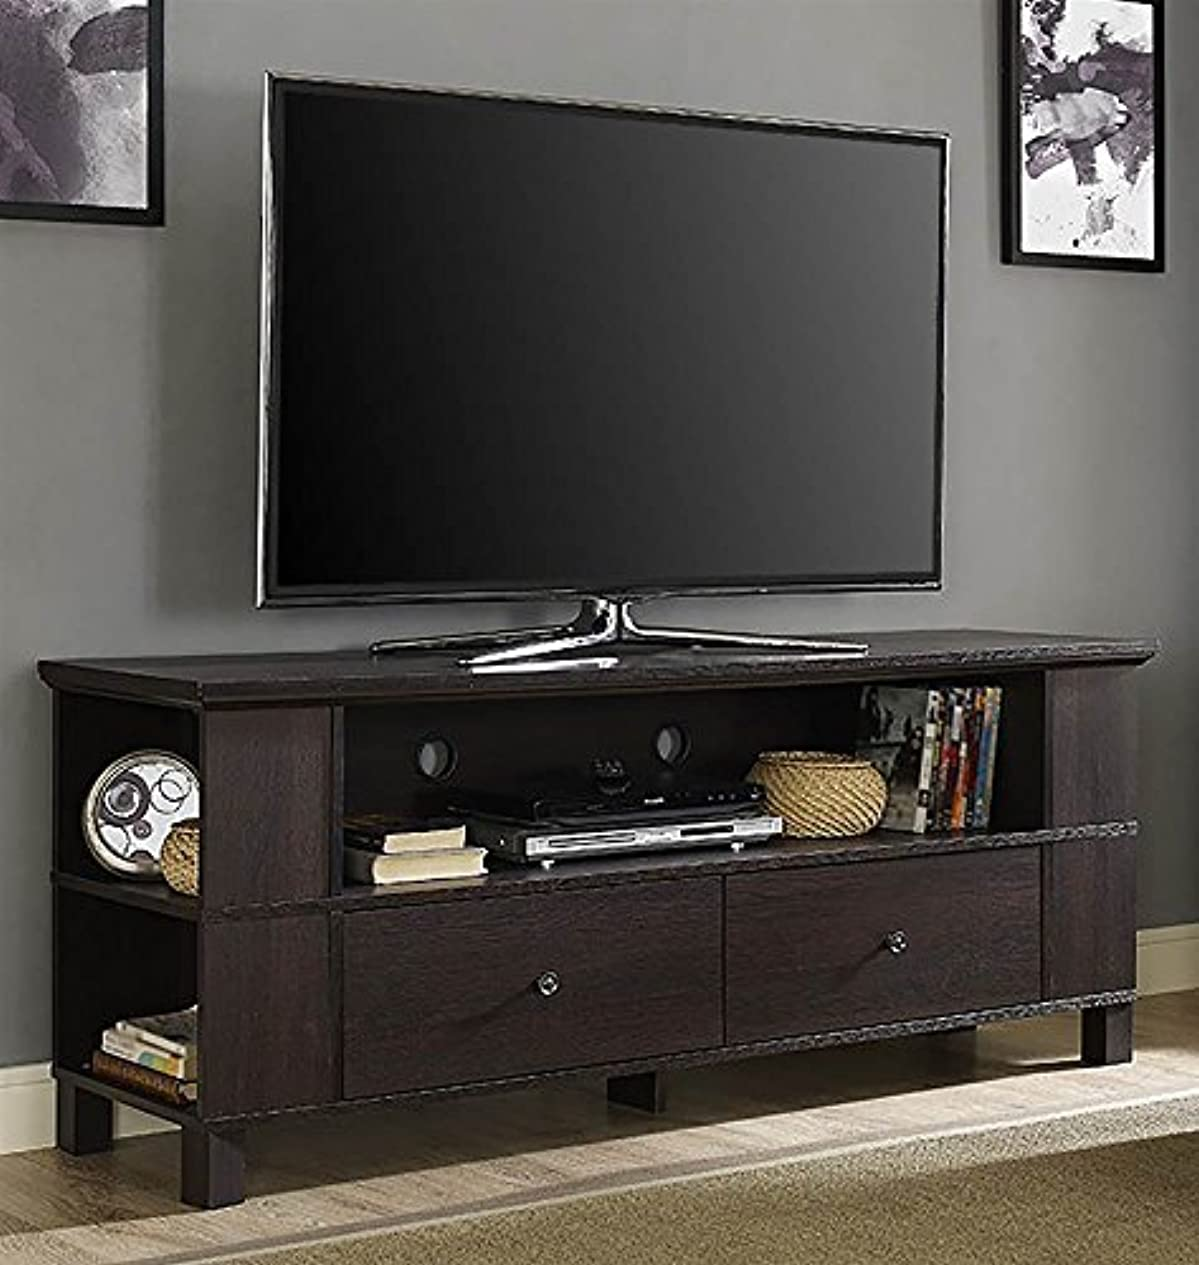 責ブラシ反逆者WE Furniture 60 Wood Storage TV Stand Espresso [並行輸入品]